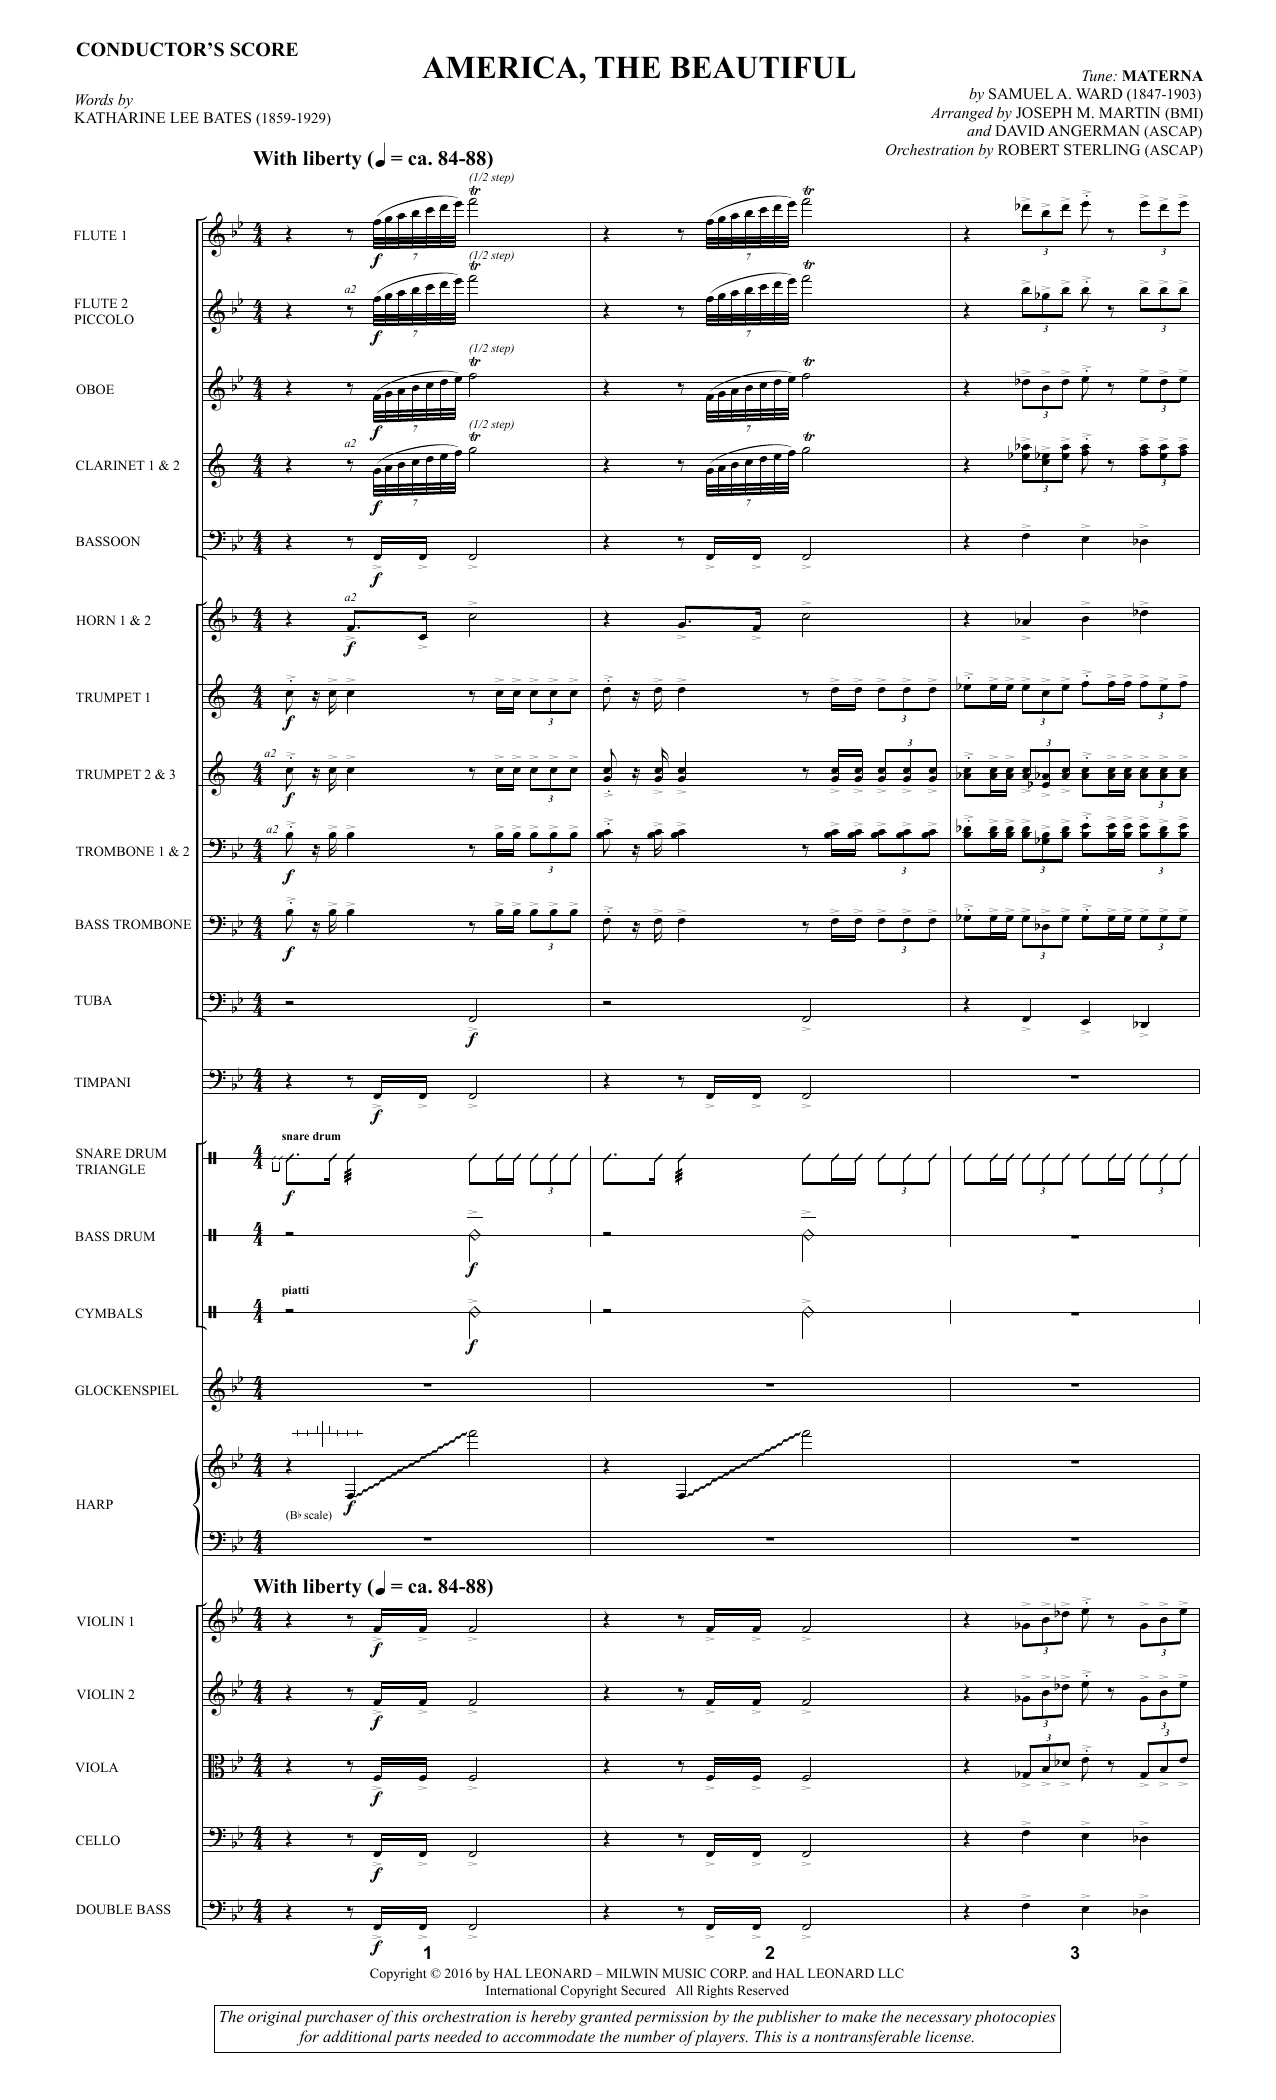 David Angerman America, the Beautiful - Full Score sheet music notes and chords. Download Printable PDF.